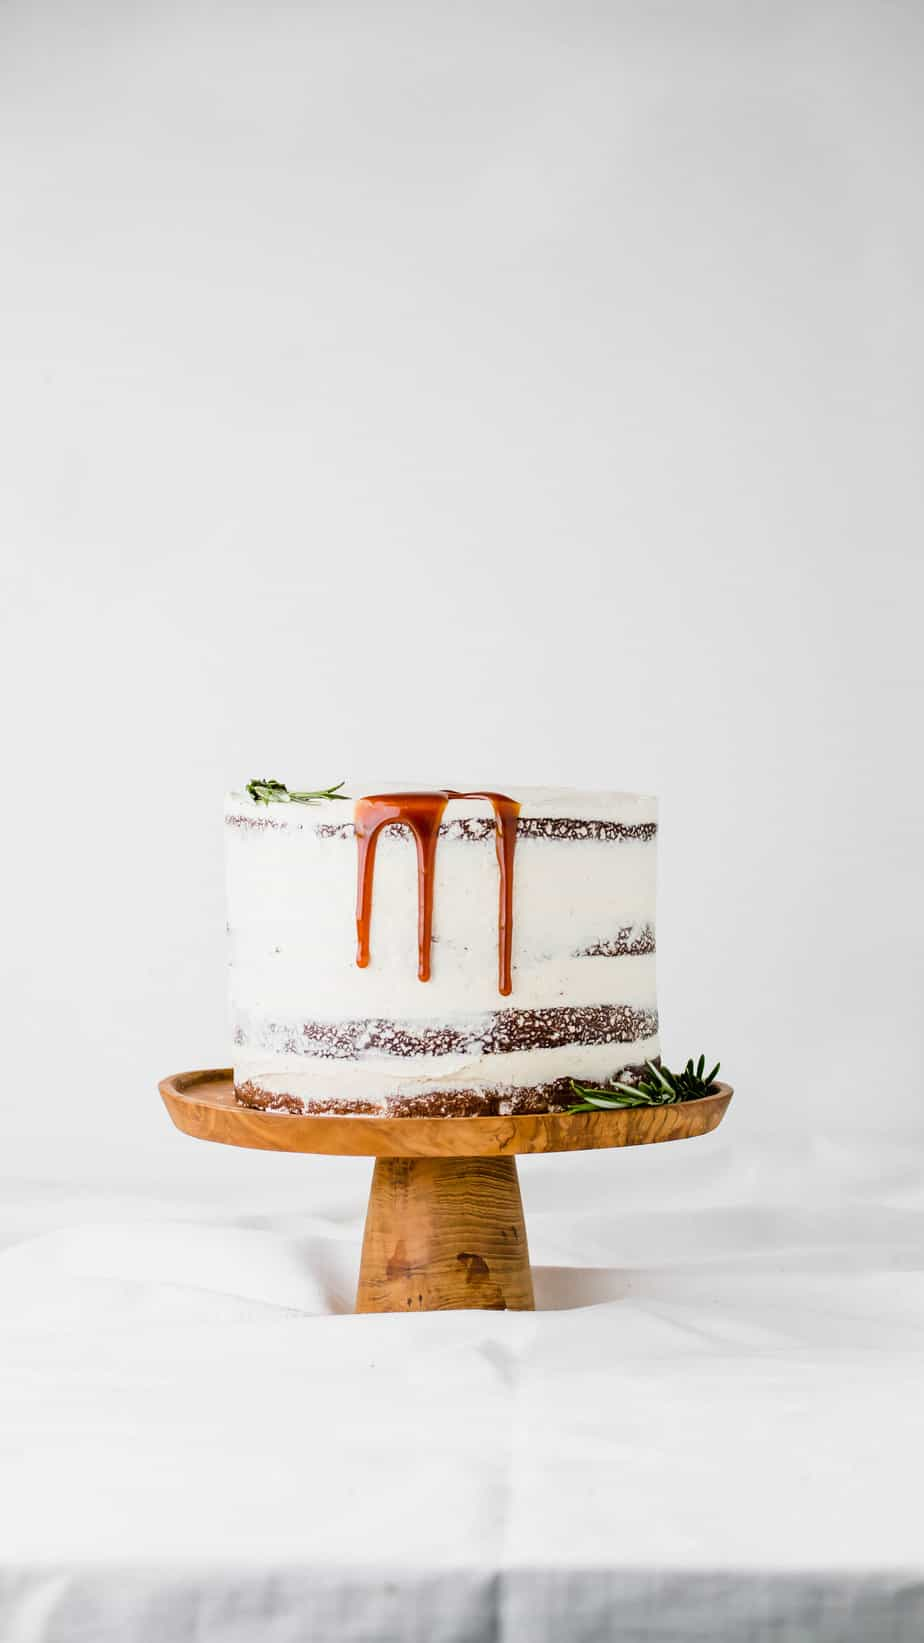 This Layered Gingerbread Cake with Salted Caramel Sauce is the ultimate festive season recipe, plus WIN a Classic Roasting Pan from Scanpan South Africa!